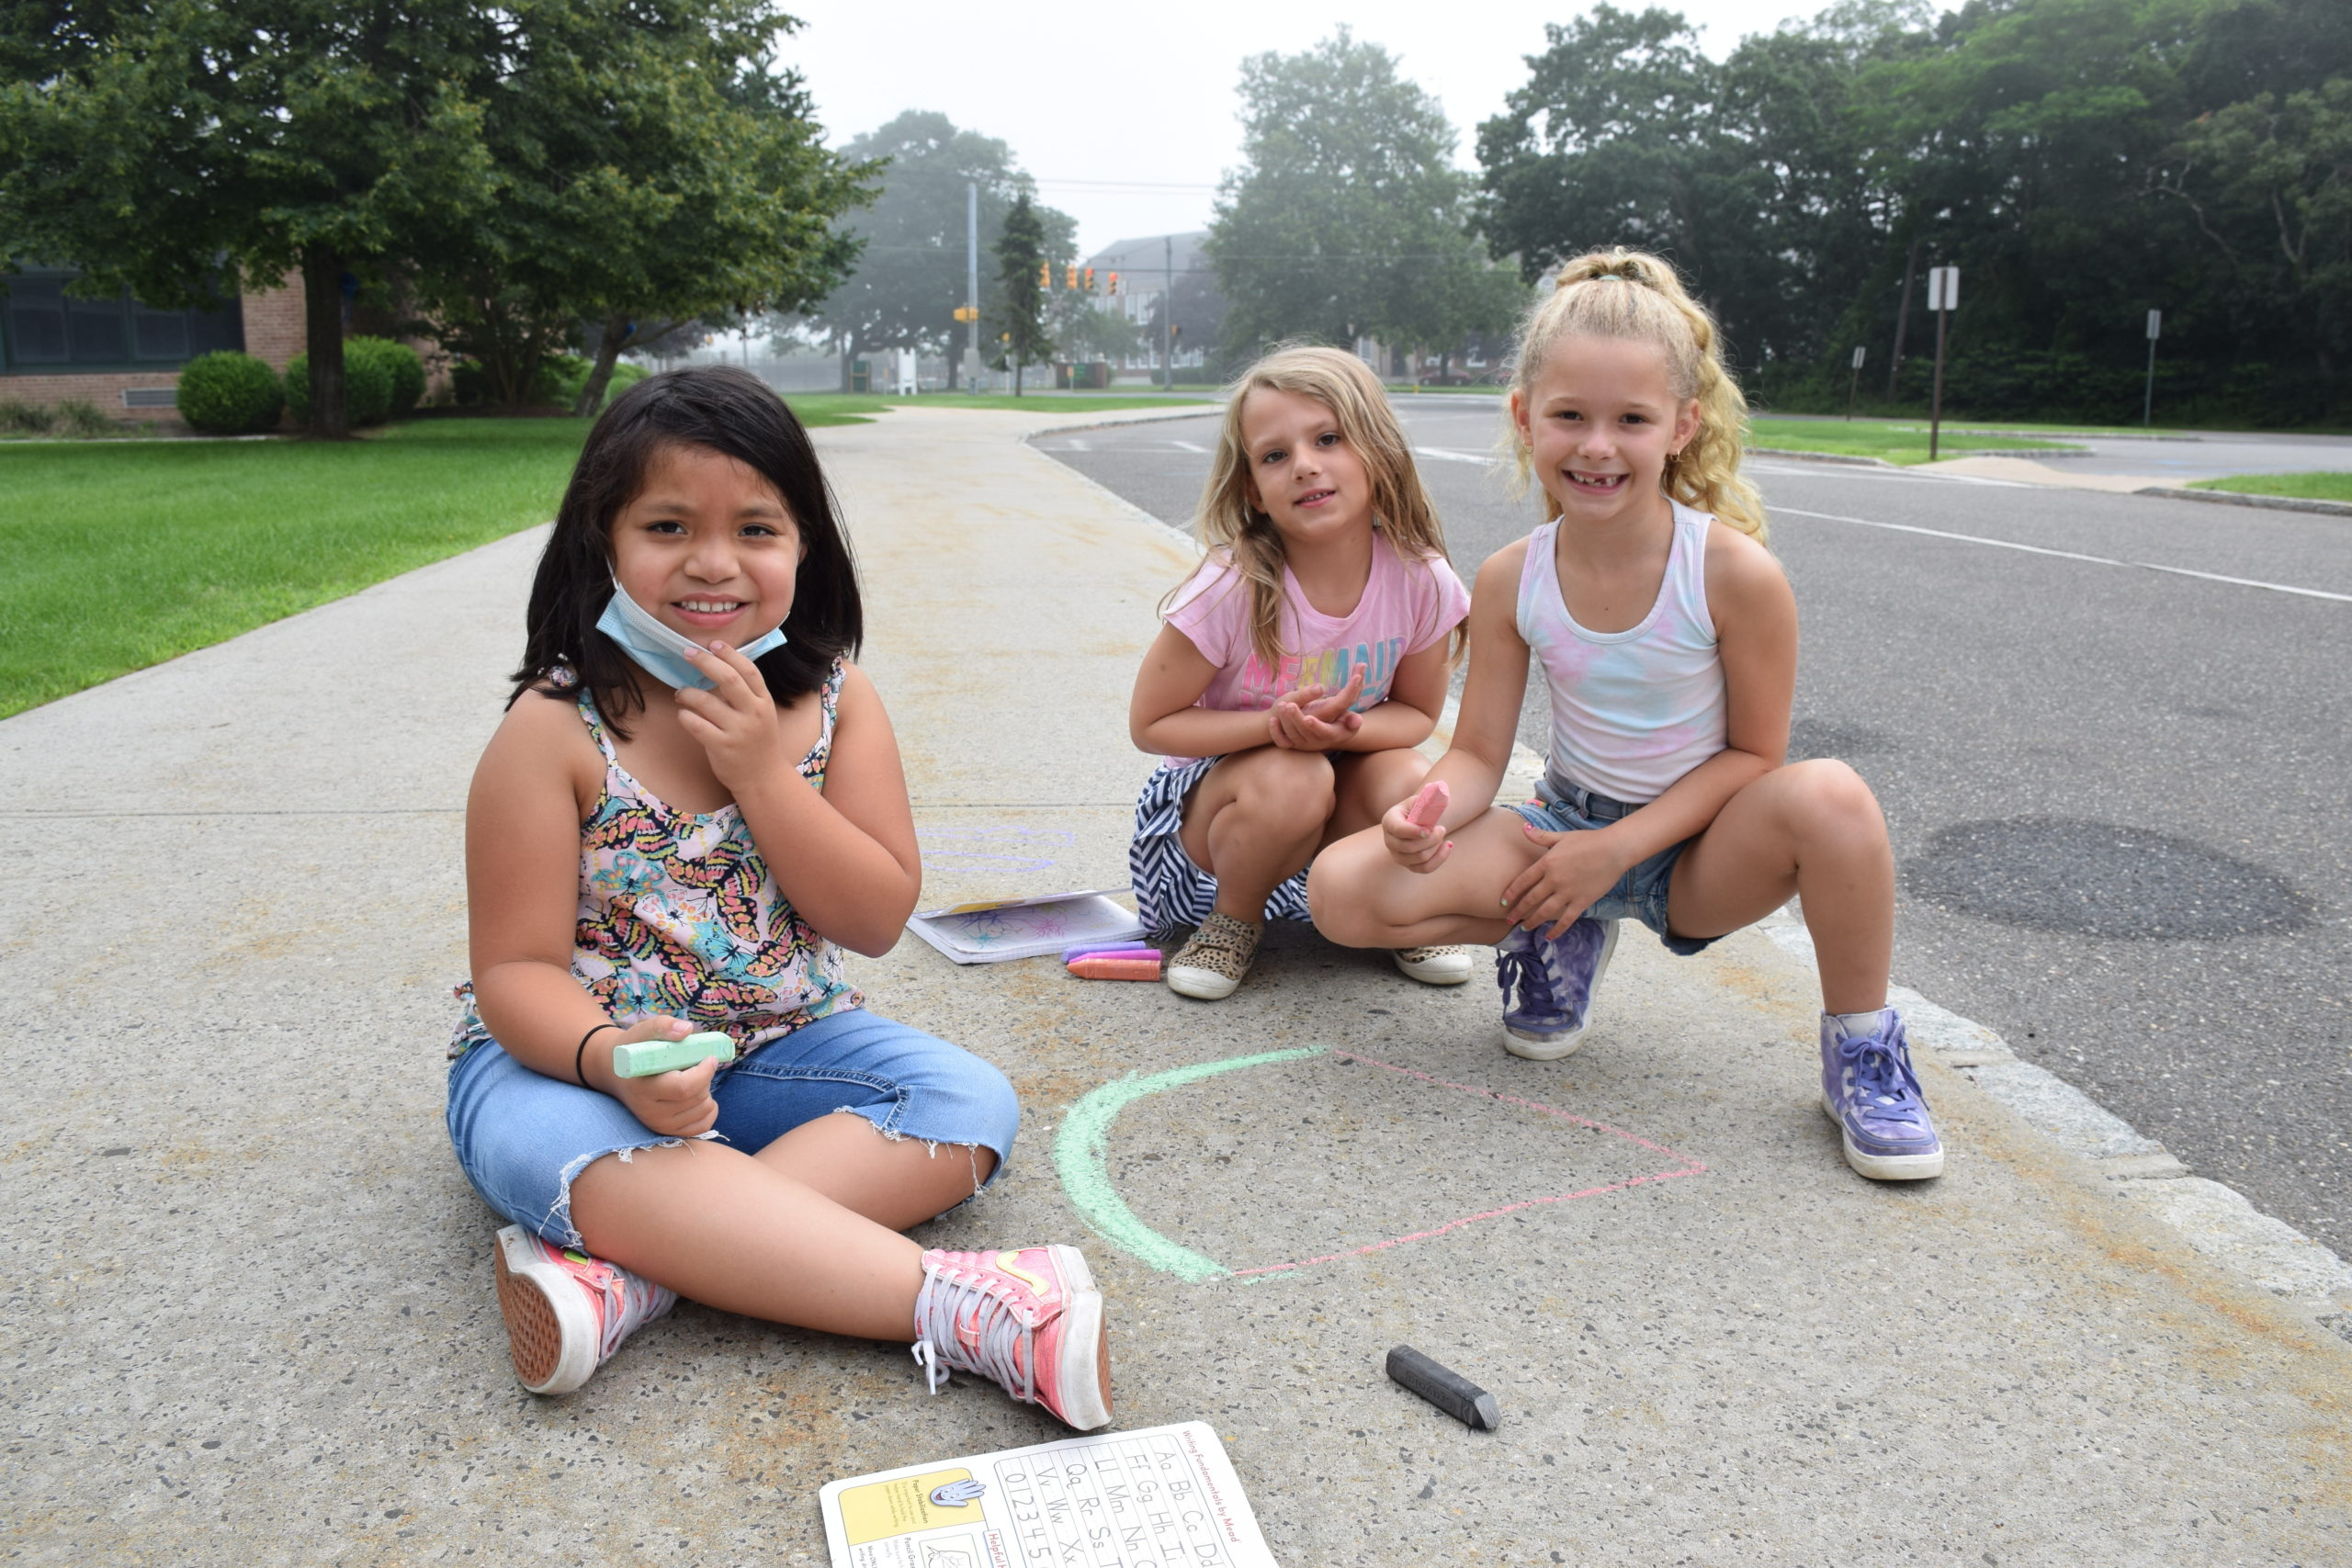 Summer Learning in Westhampton Beach Photo caption: Westhampton Beach Elementary School students have been honing their academic skills through the district's Summer Academy program.